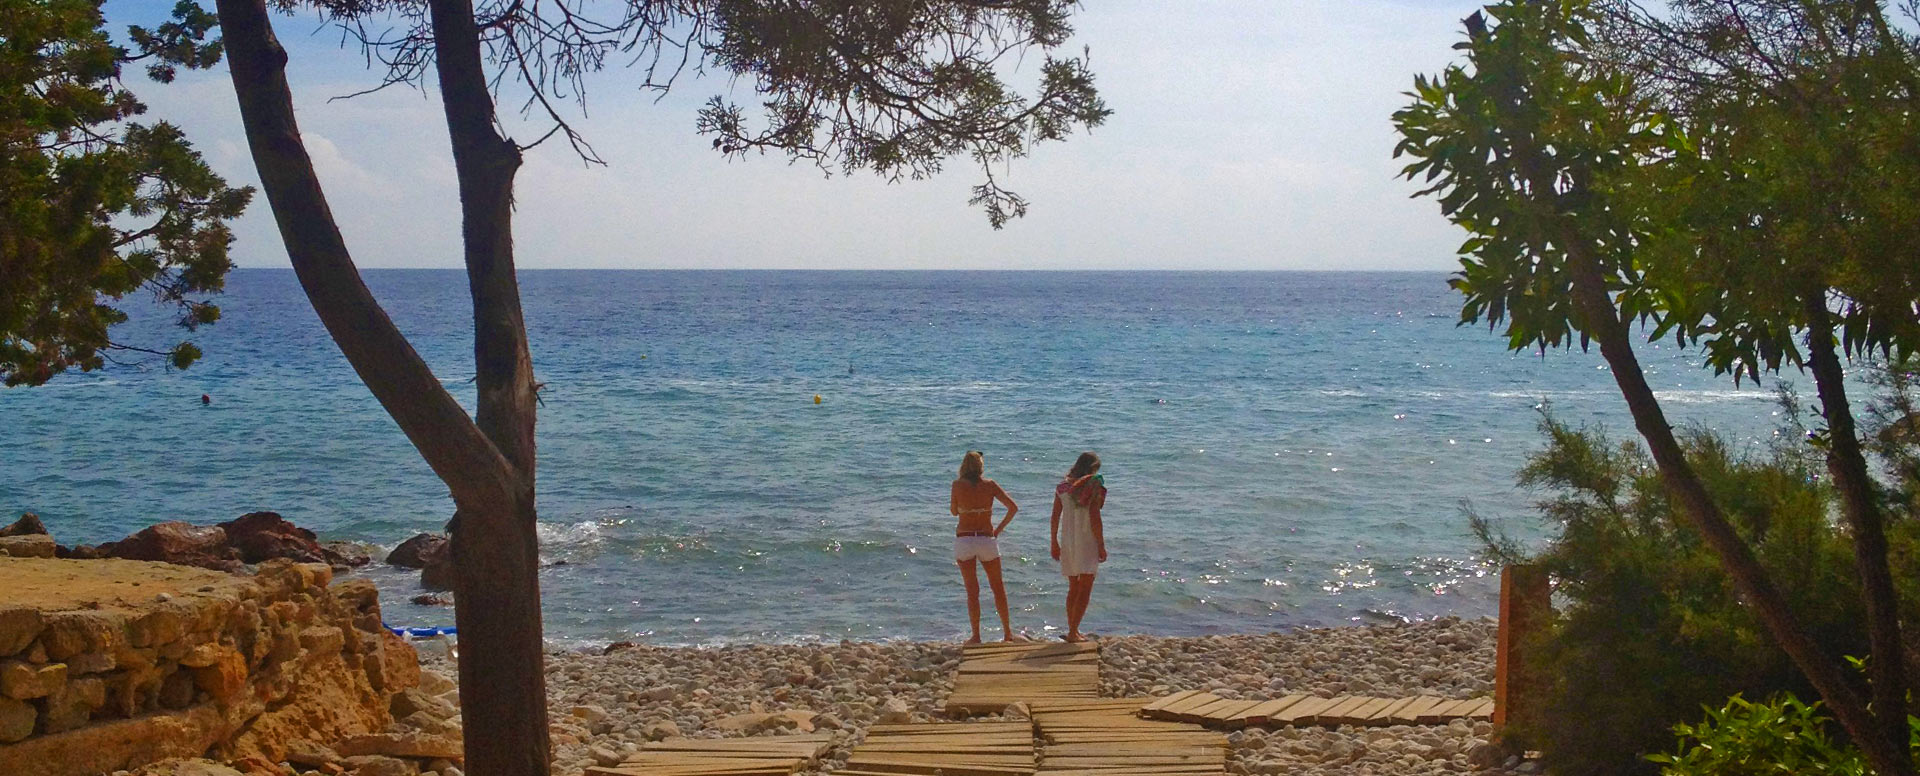 The beaches of Ibiza - West coast (1) - Ibiza